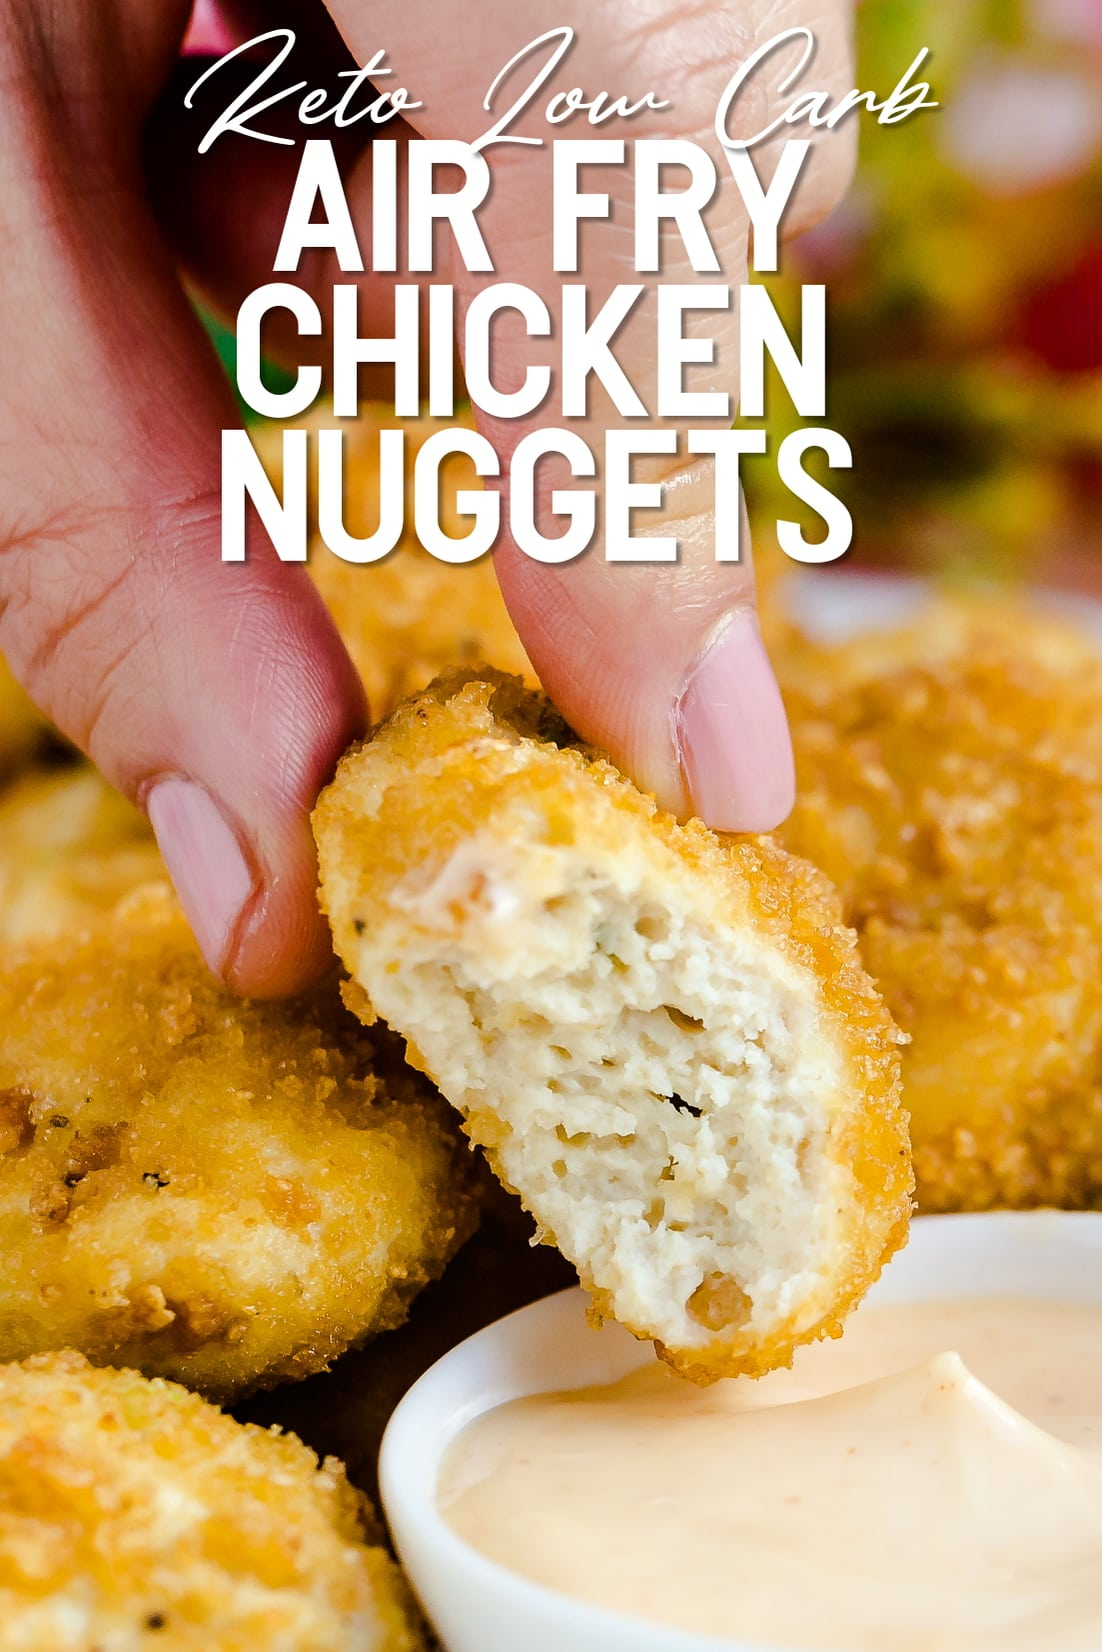 Keto chicken nuggets being dipped into spicy mayo dipping sauce